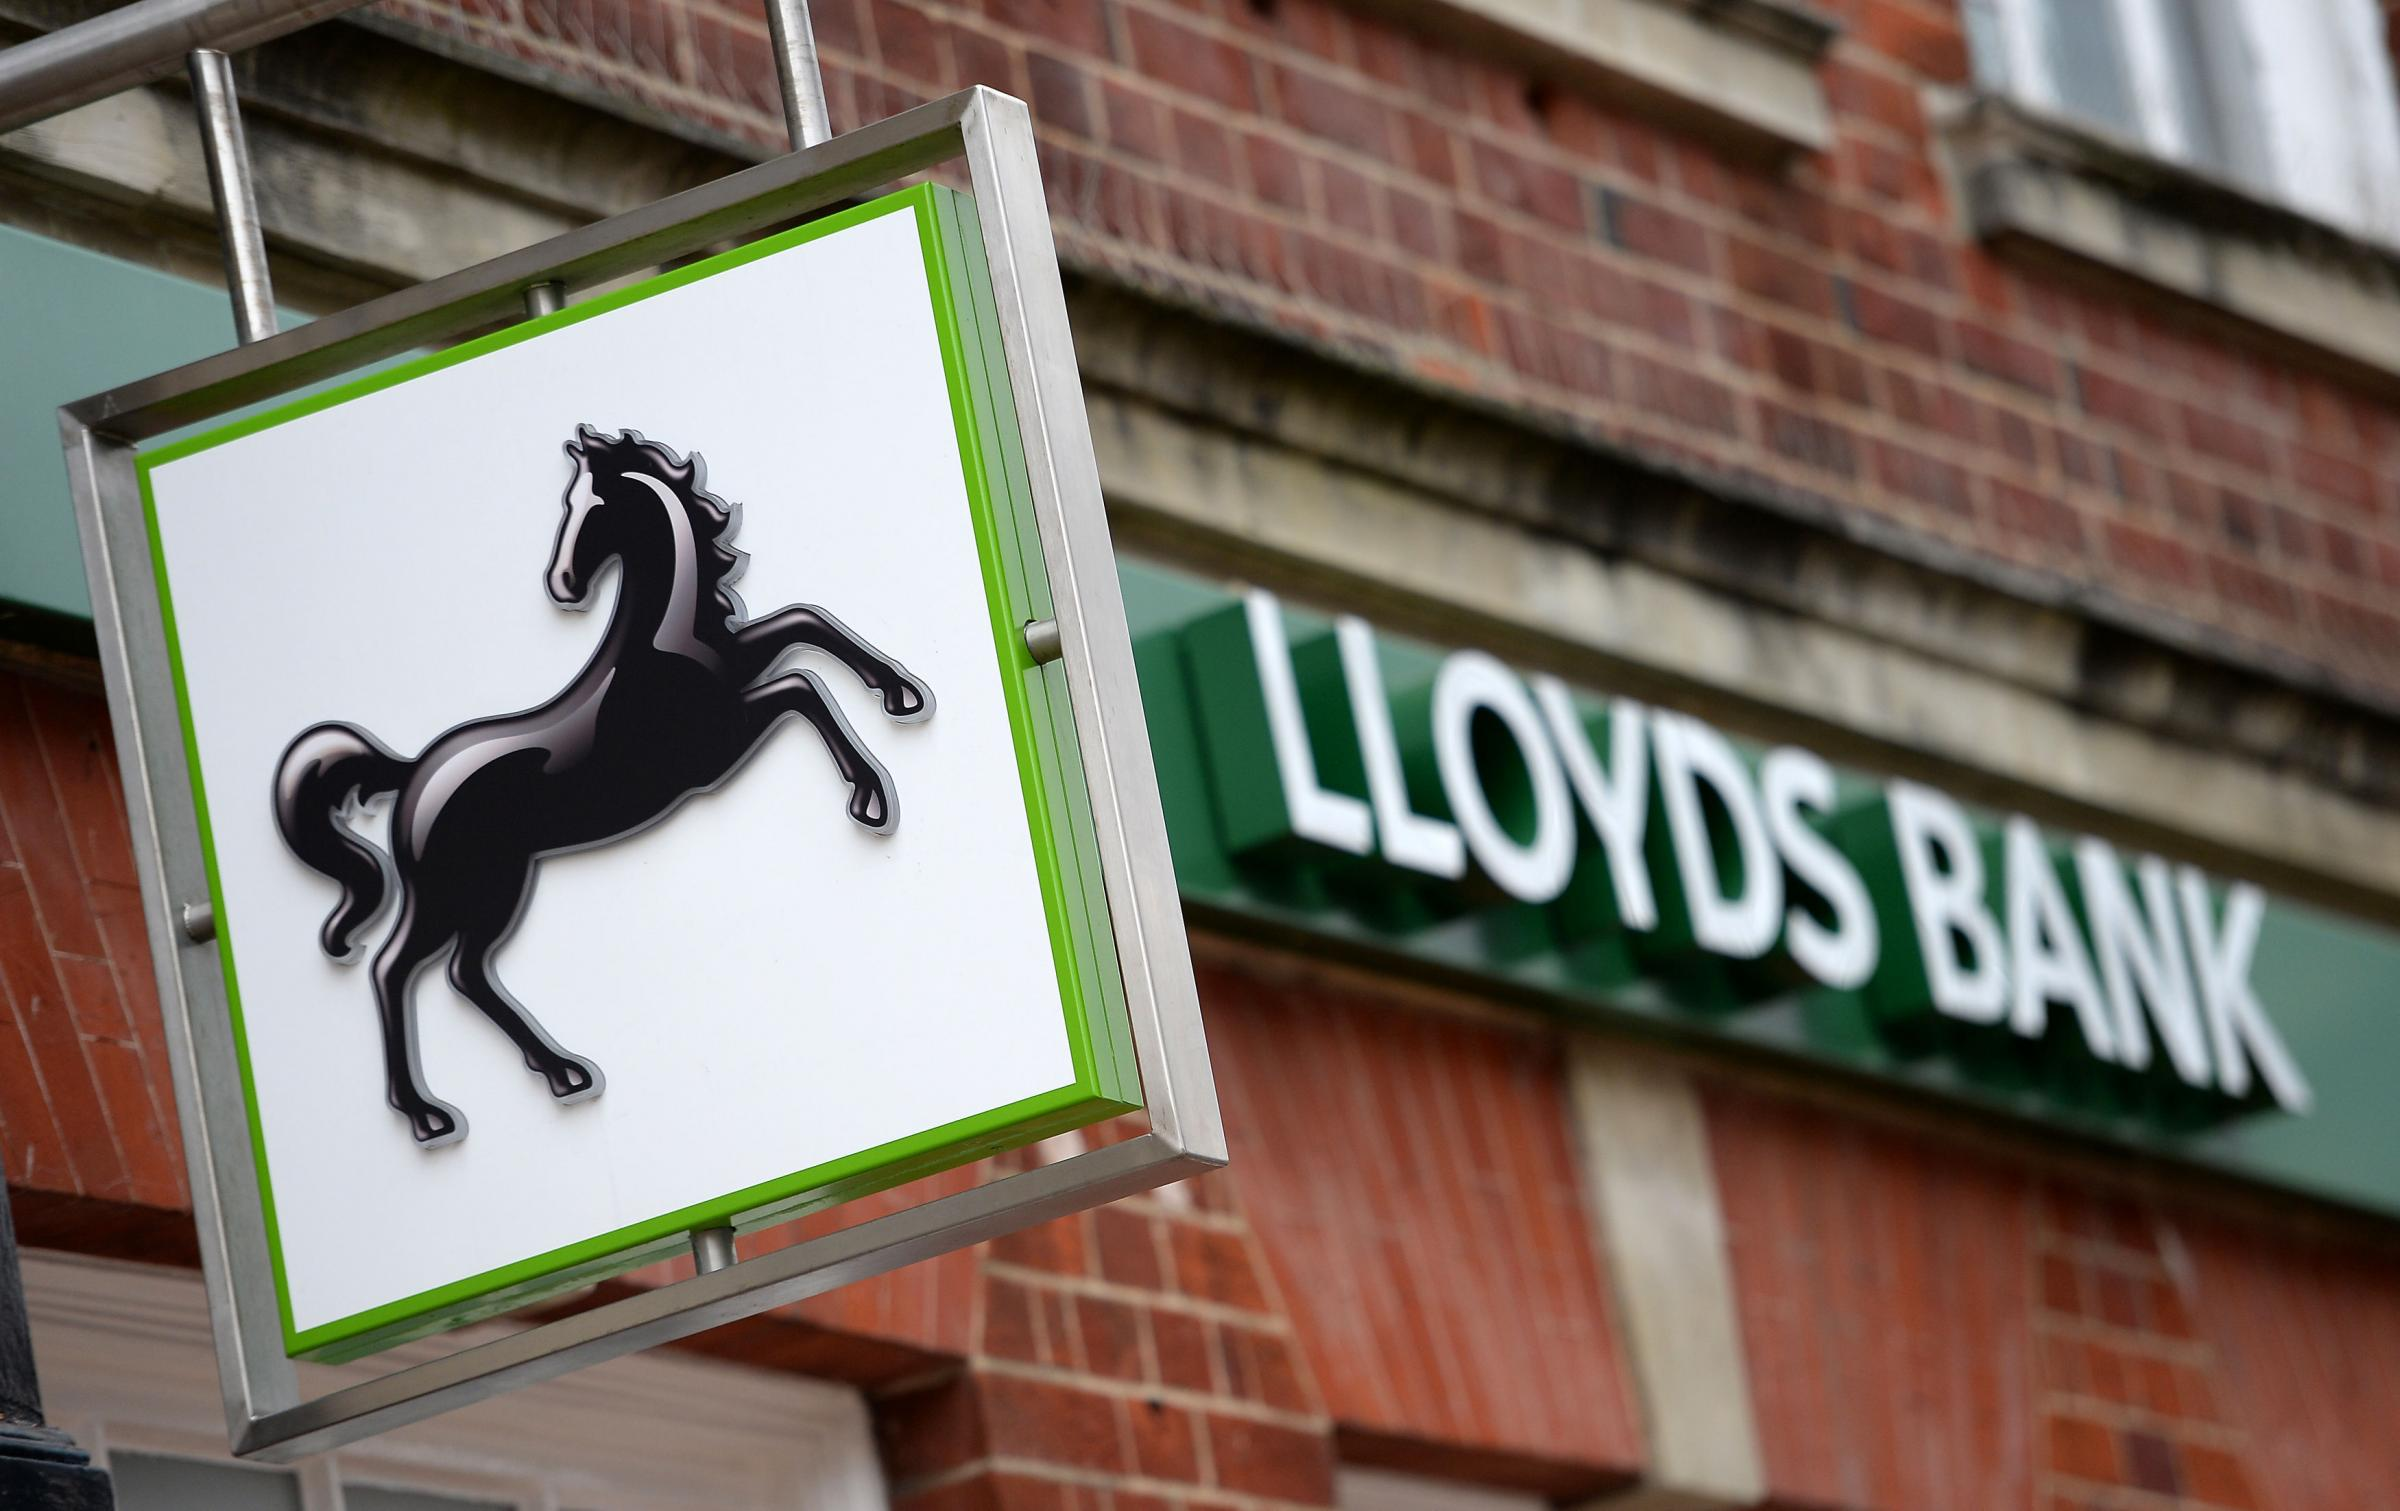 Lloyds Bank rejected a cheque written in Welsh by Cardigan Town Council. PICTURE: PA Wire